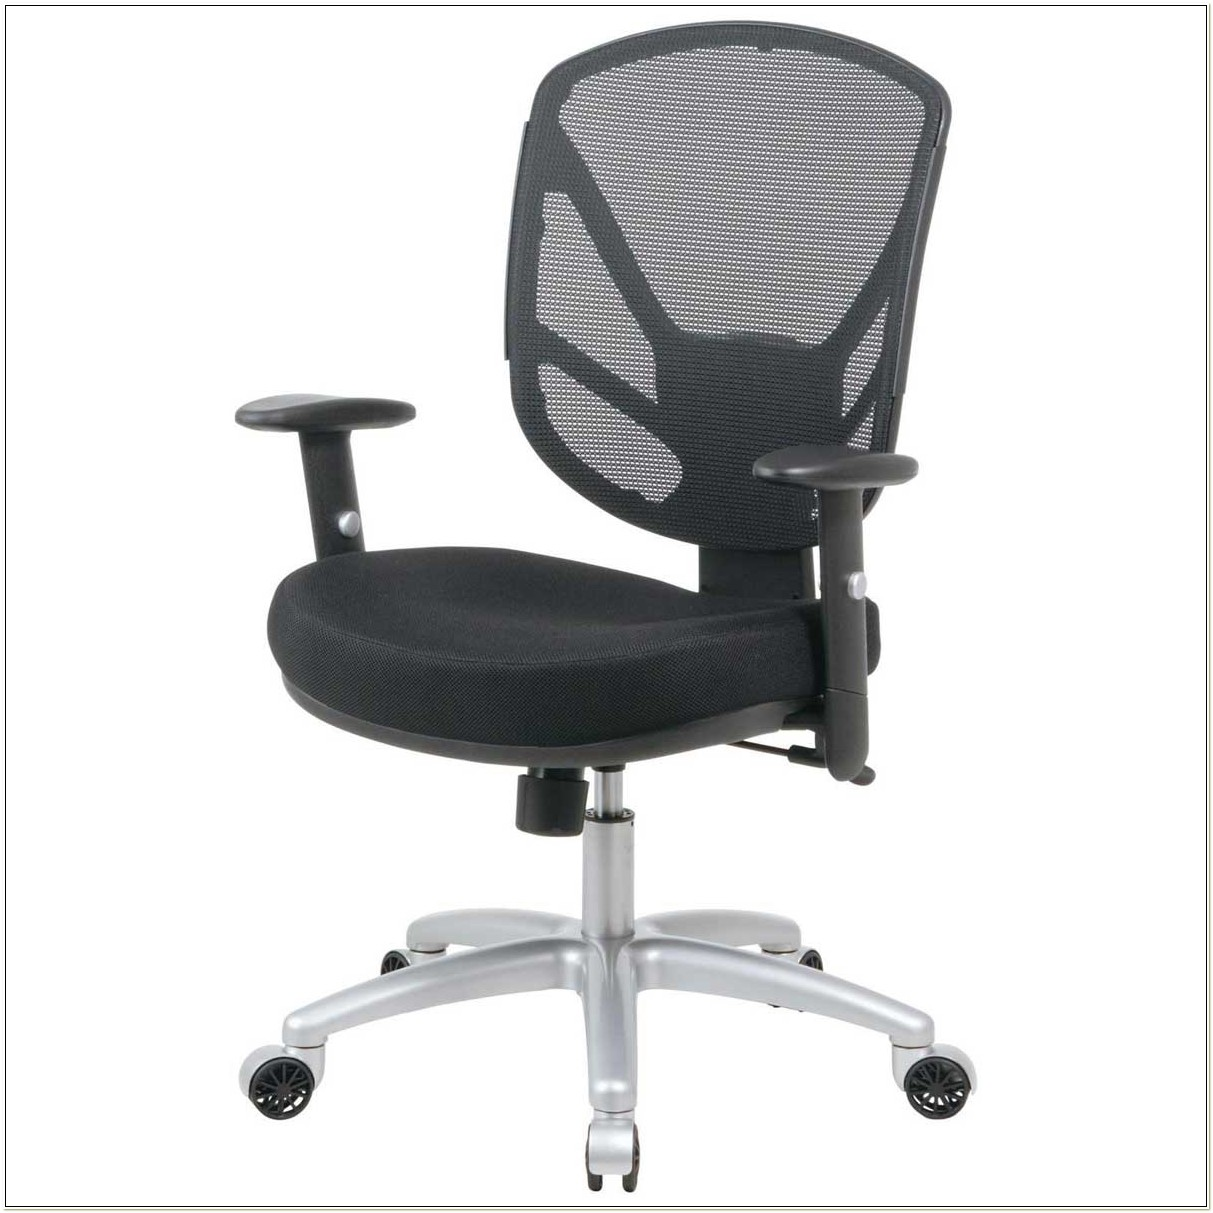 Office Depot Ergonomic Desk Chairs